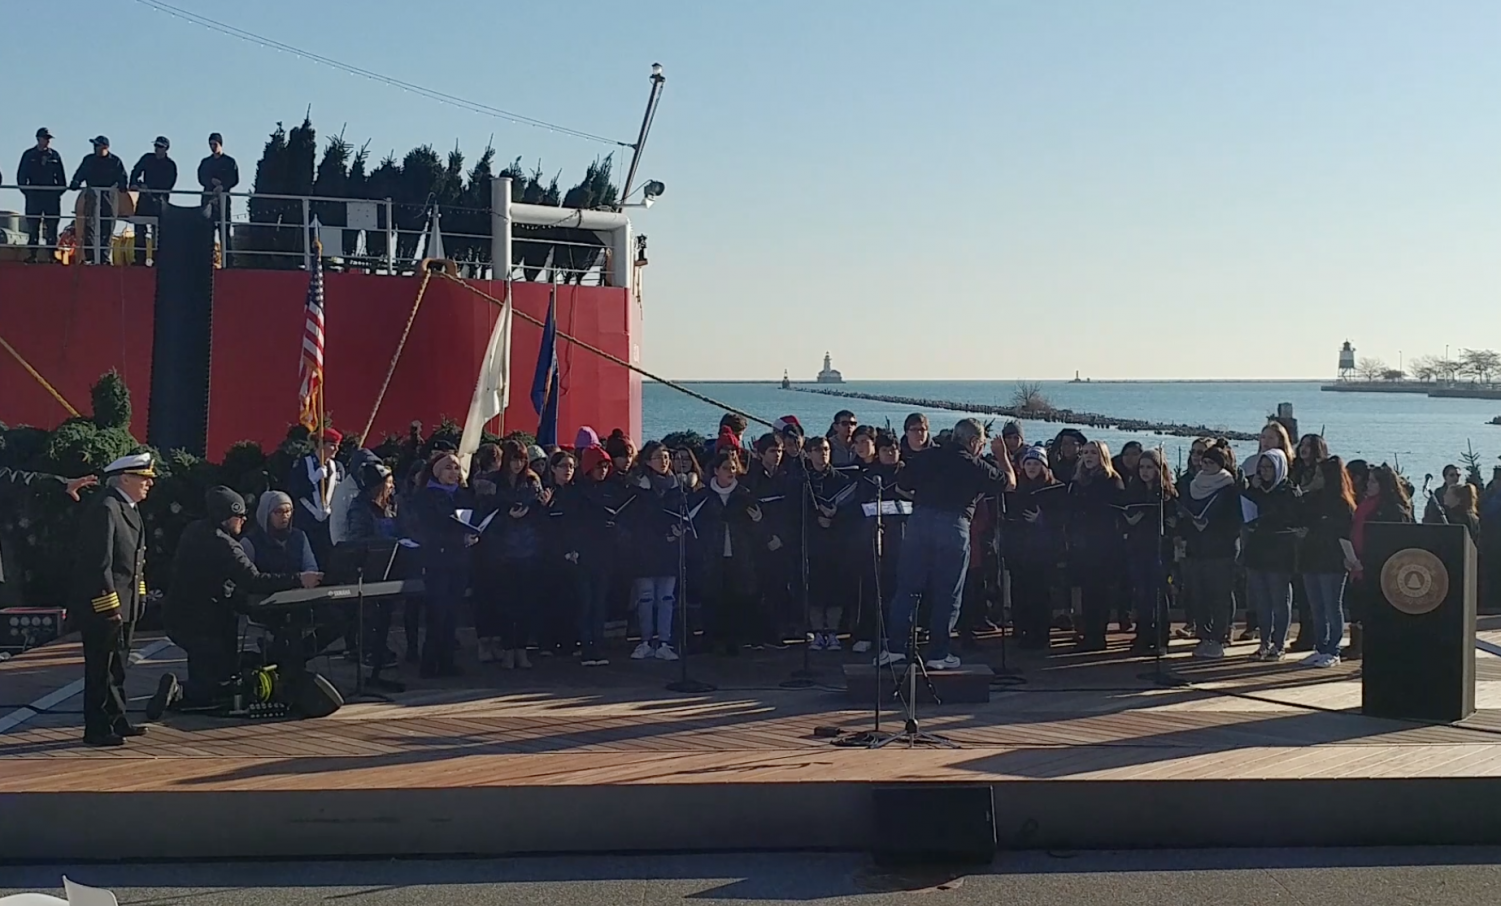 Mr. Lavery directing the Eagle Singers at Navy Pier